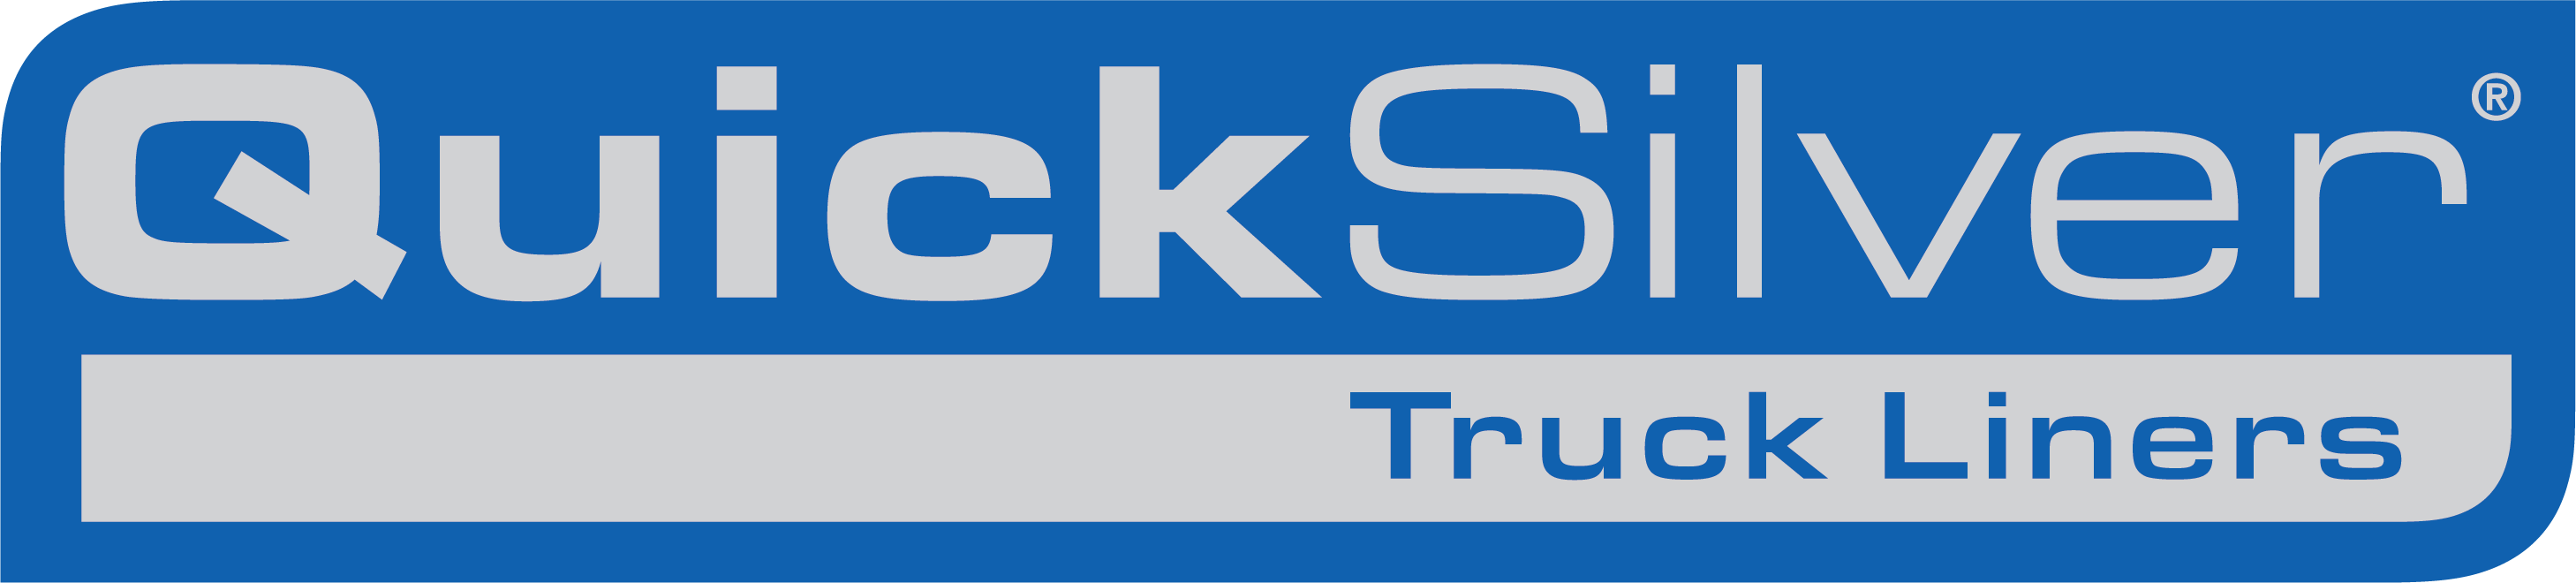 blue and white logo of Quicksilver truck liners logo